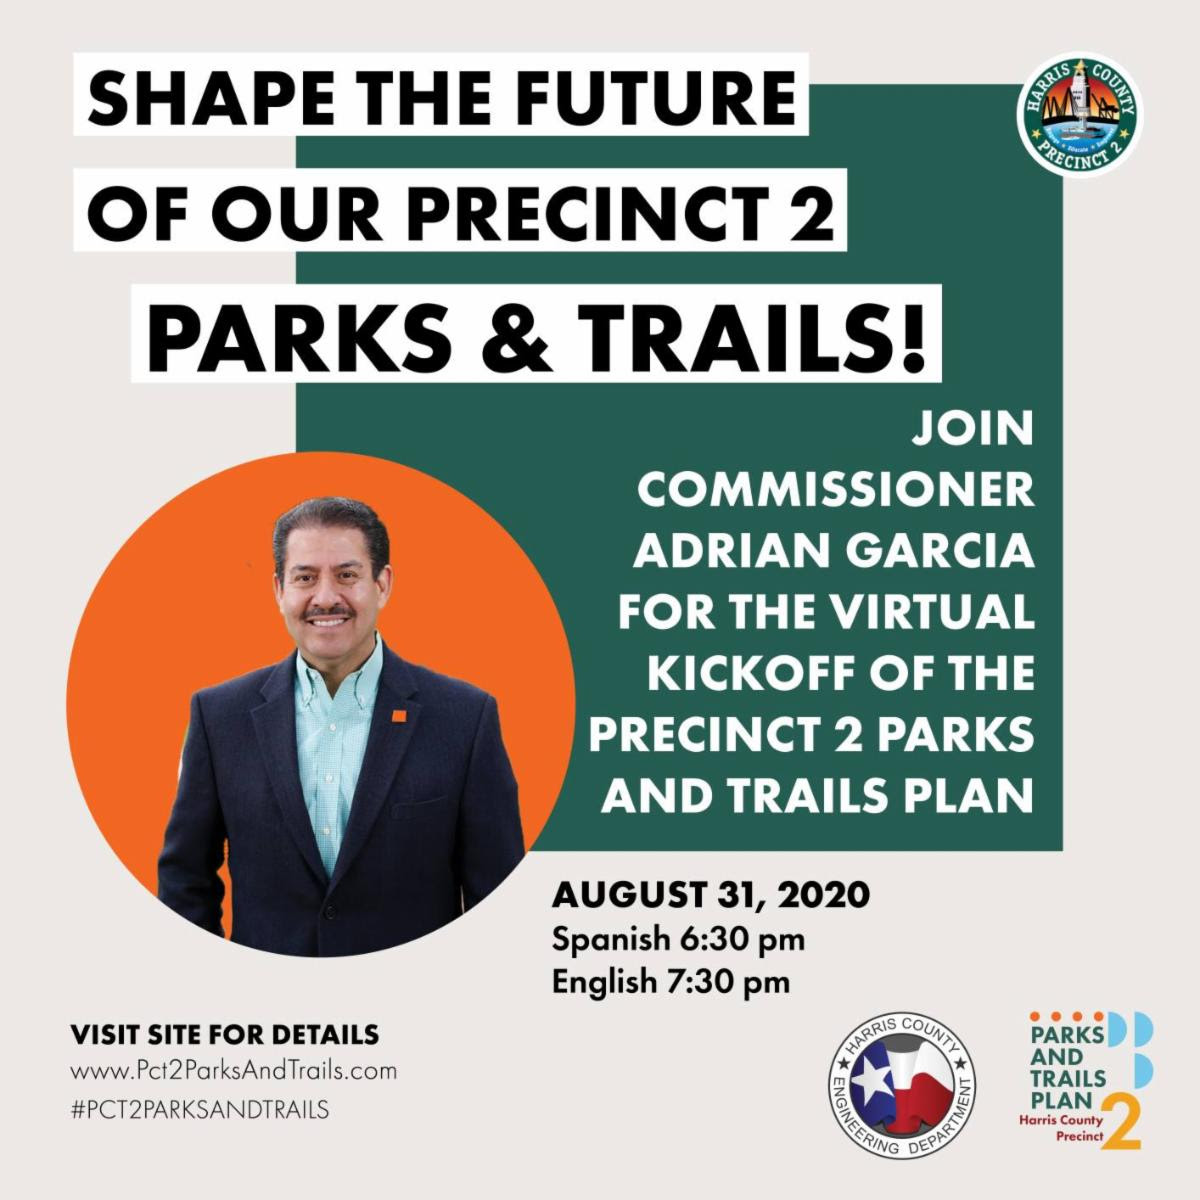 You are Invited: Precinct 2 Parks & Trails Plan Kickoff Meeting! 2